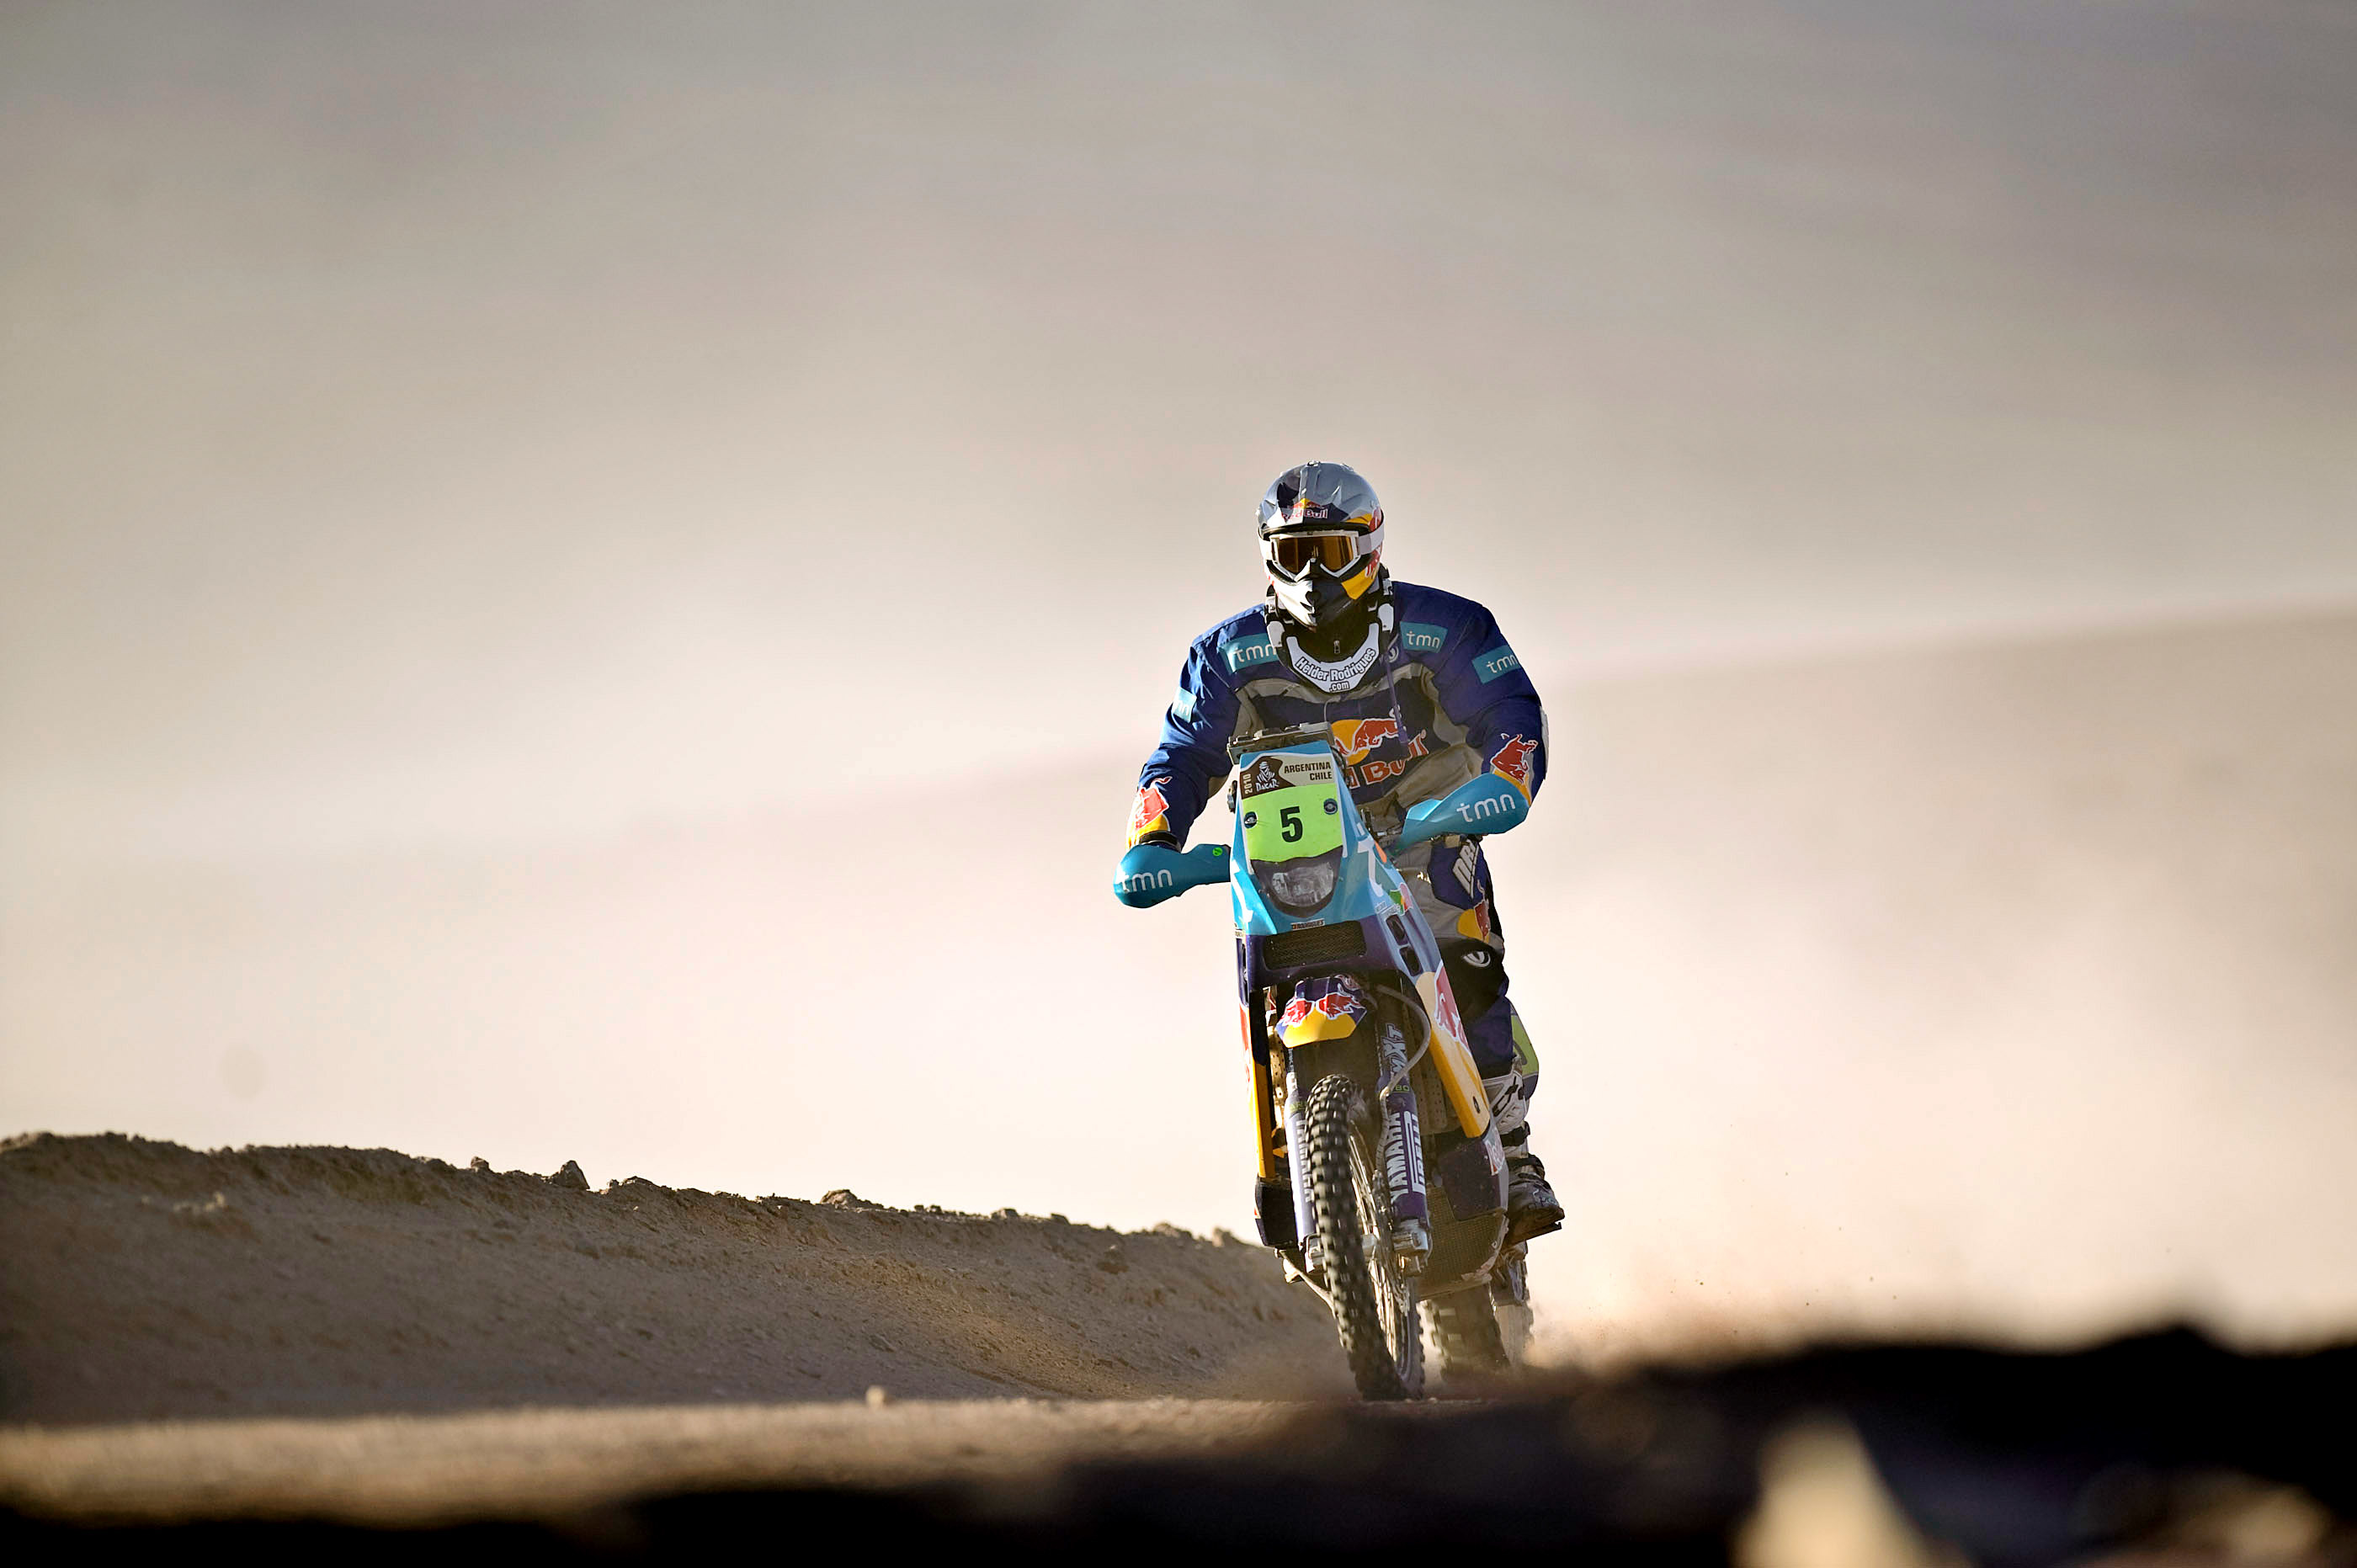 motocross bike HD Wallpaper